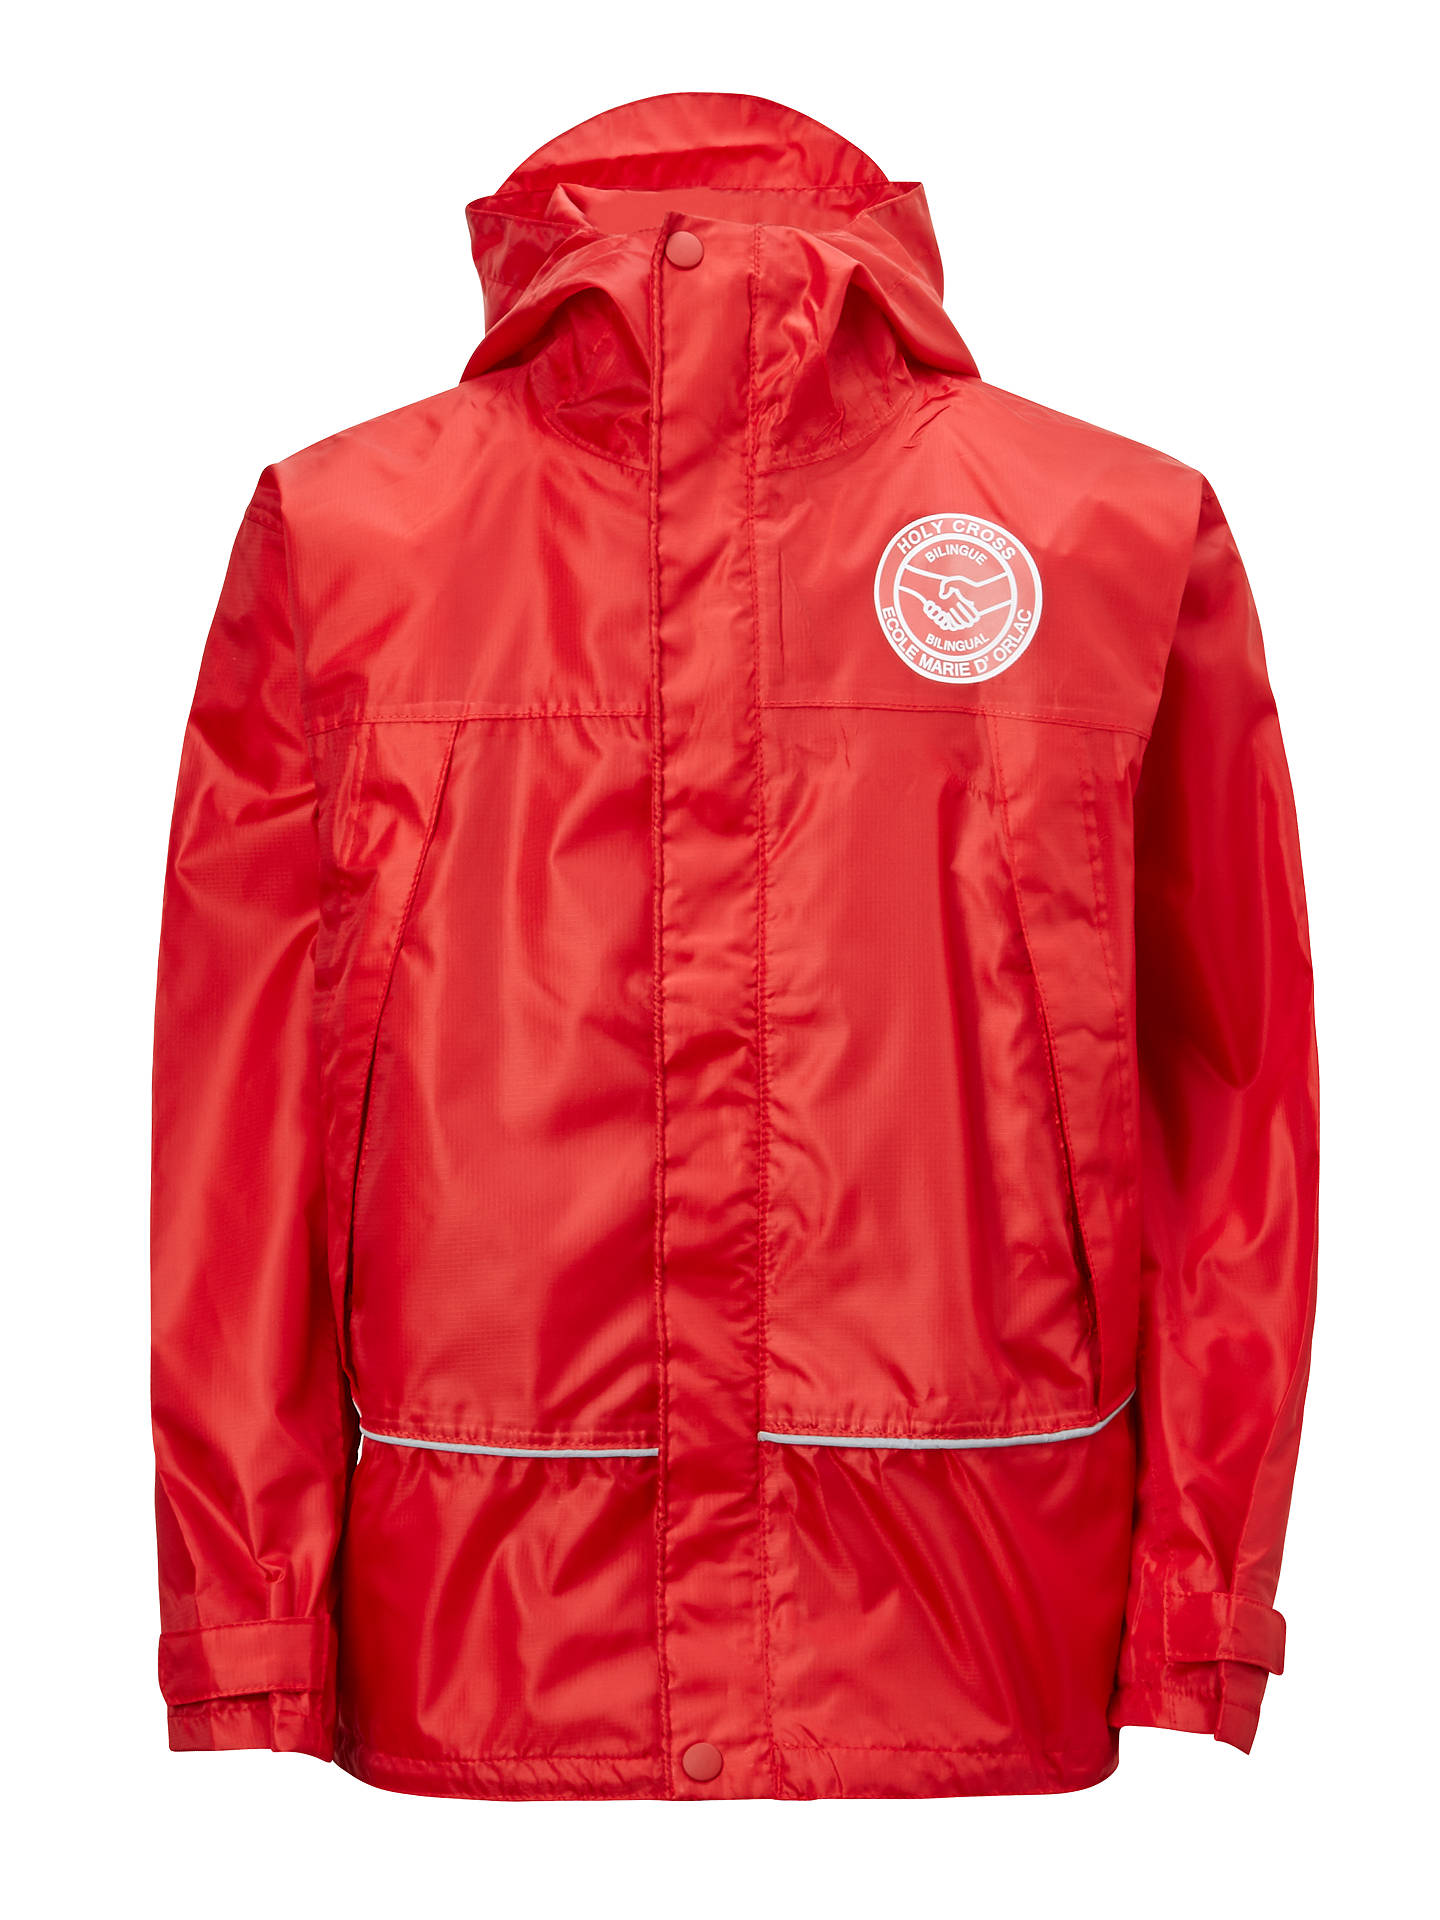 Buy Bilingue/Bilingual Stream of L'Ecole Marie D'Orliac & Holy Cross School Rain Jacket, Red, 5-6 years Online at johnlewis.com